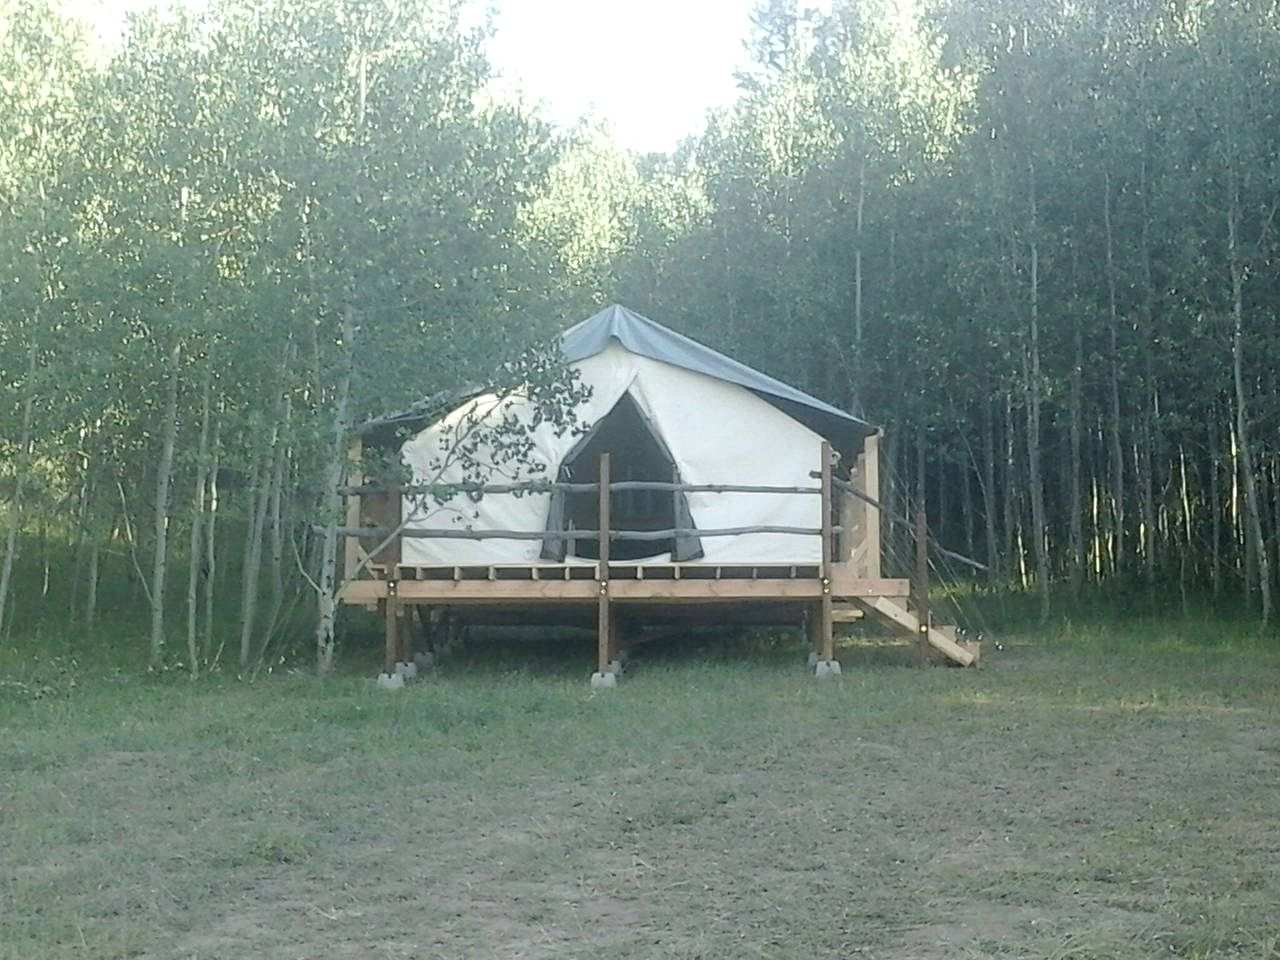 Elevated safari tent rental for a vacation in Idaho Falls.